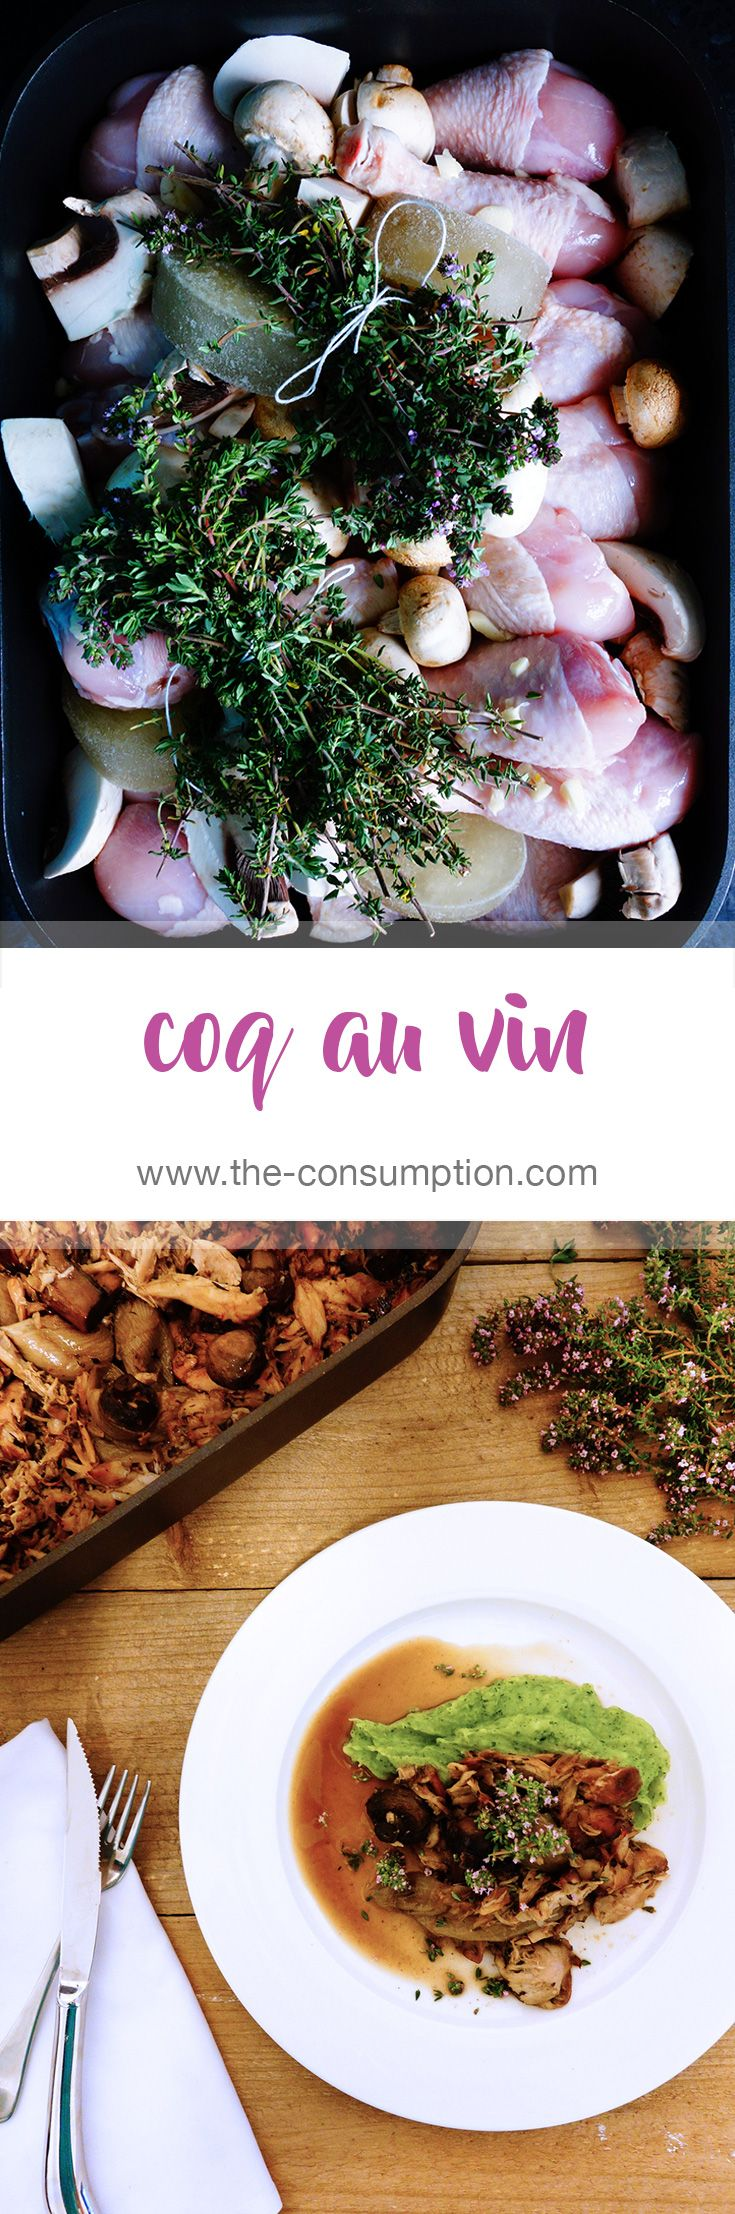 Beautiful chicken in red wine with bunches of fresh thyme.